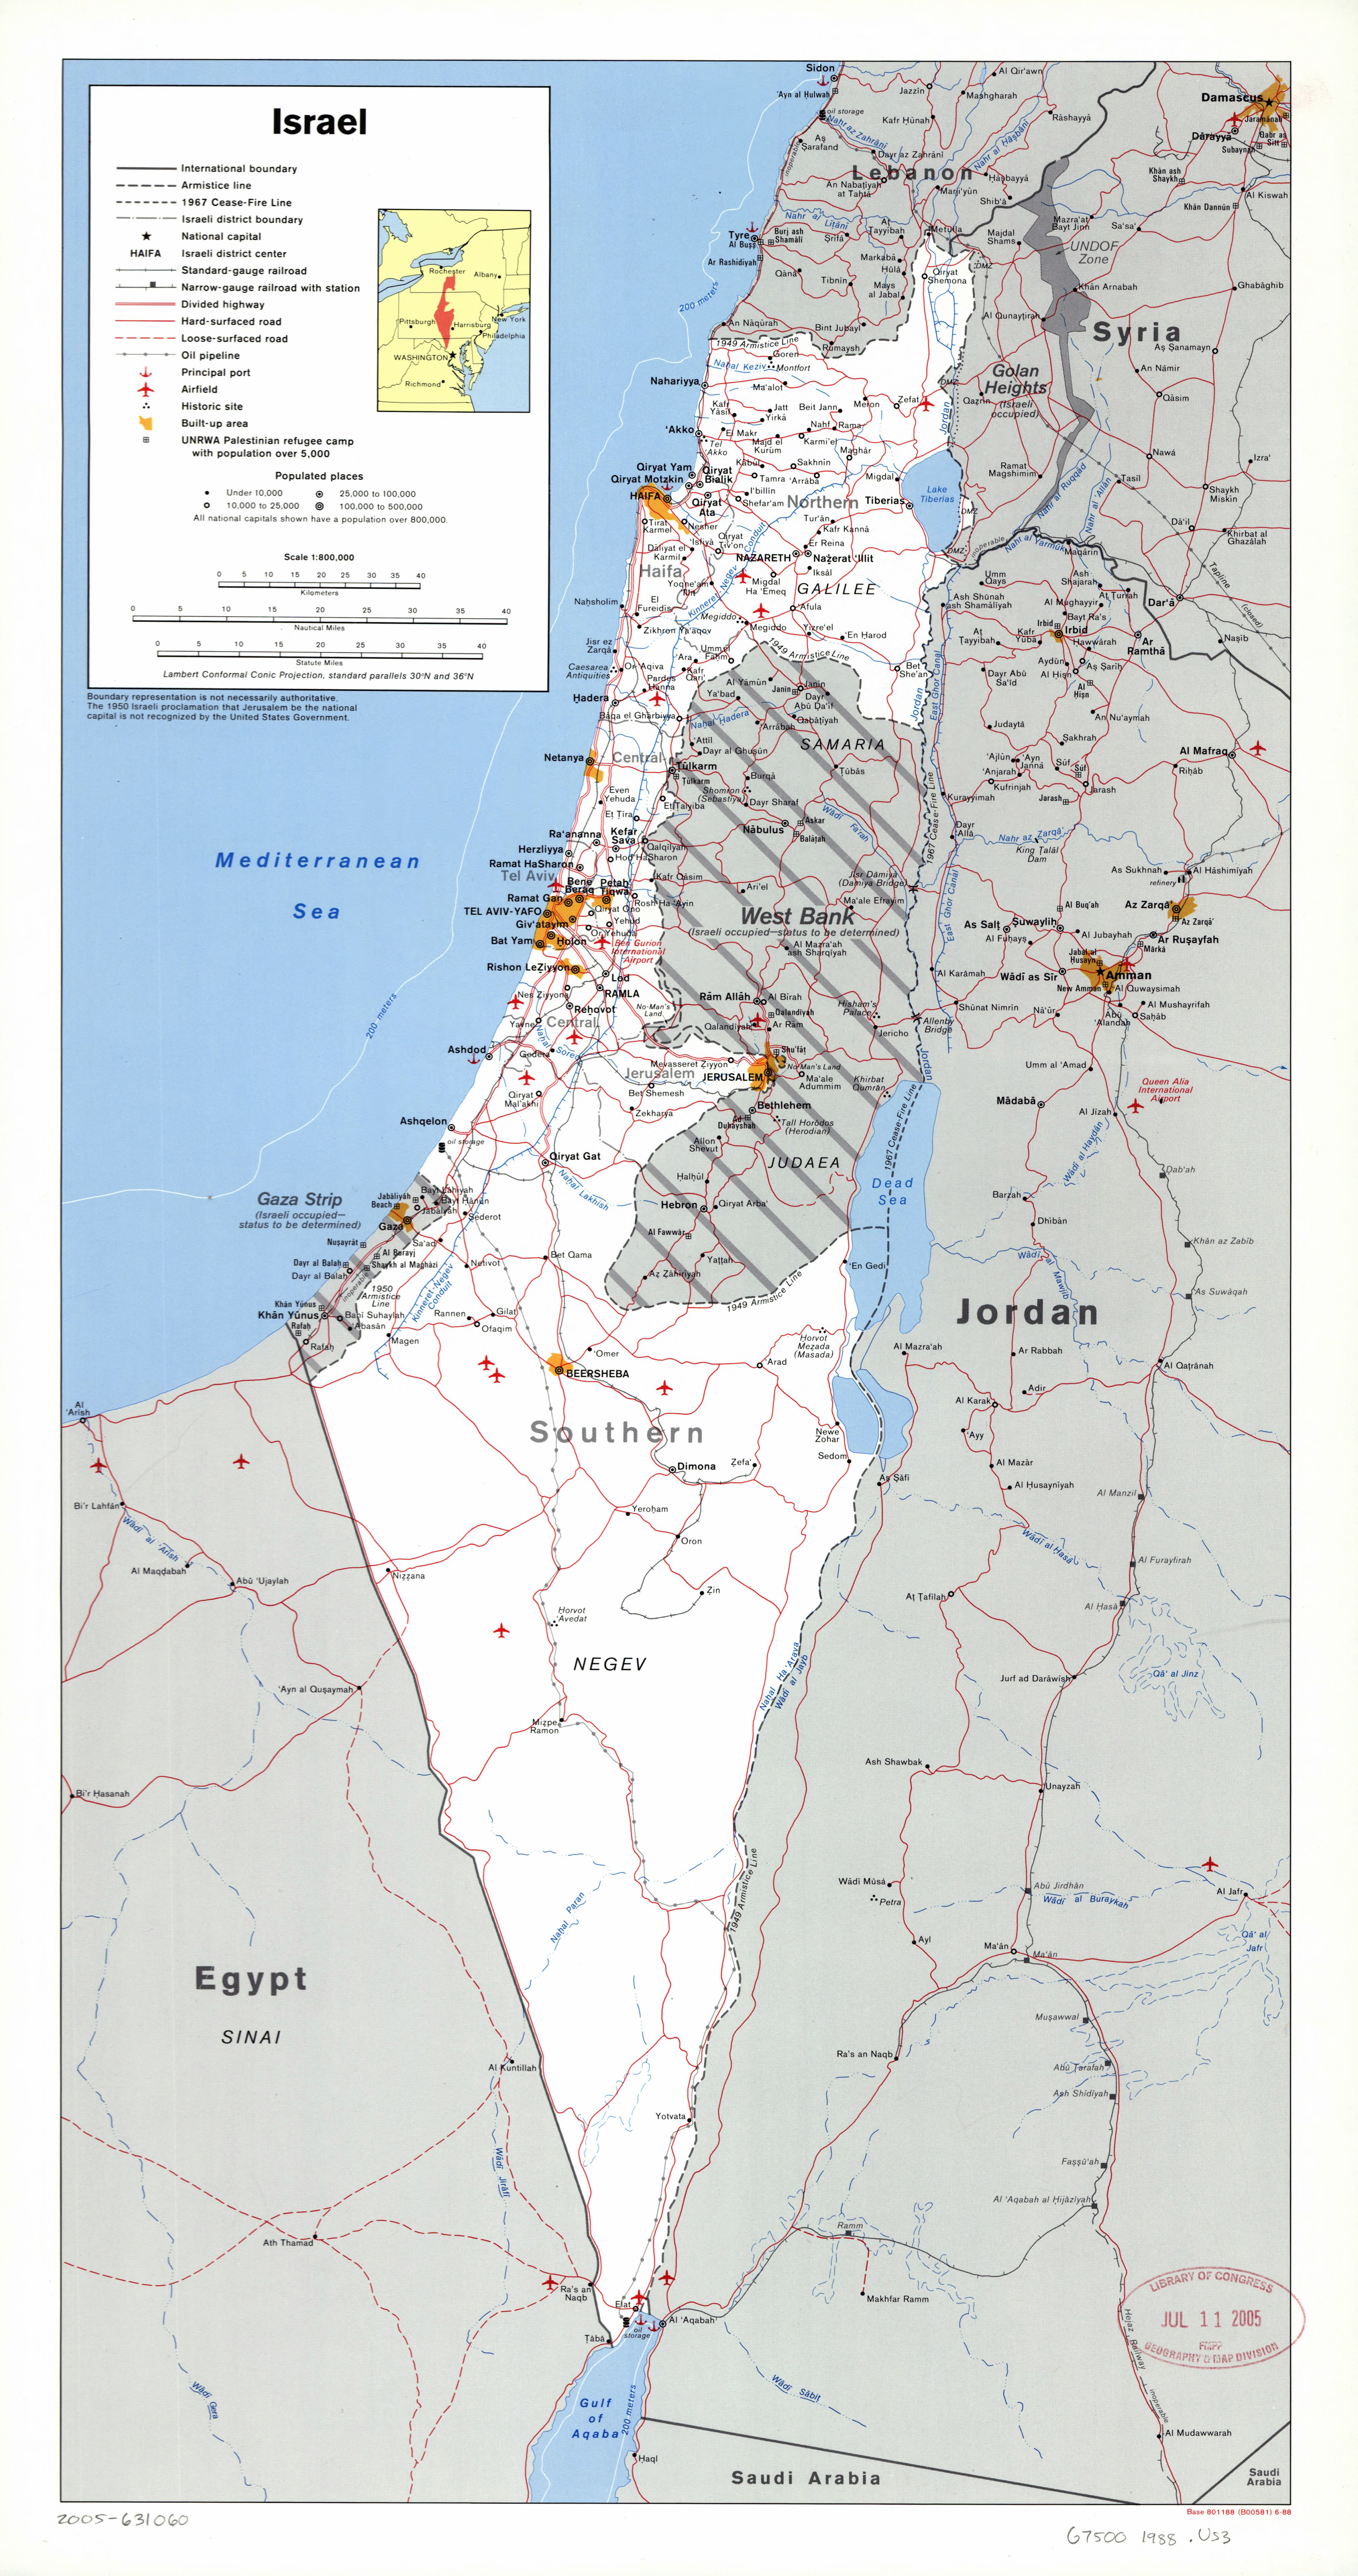 Large scale political and administrative map of Israel with roads